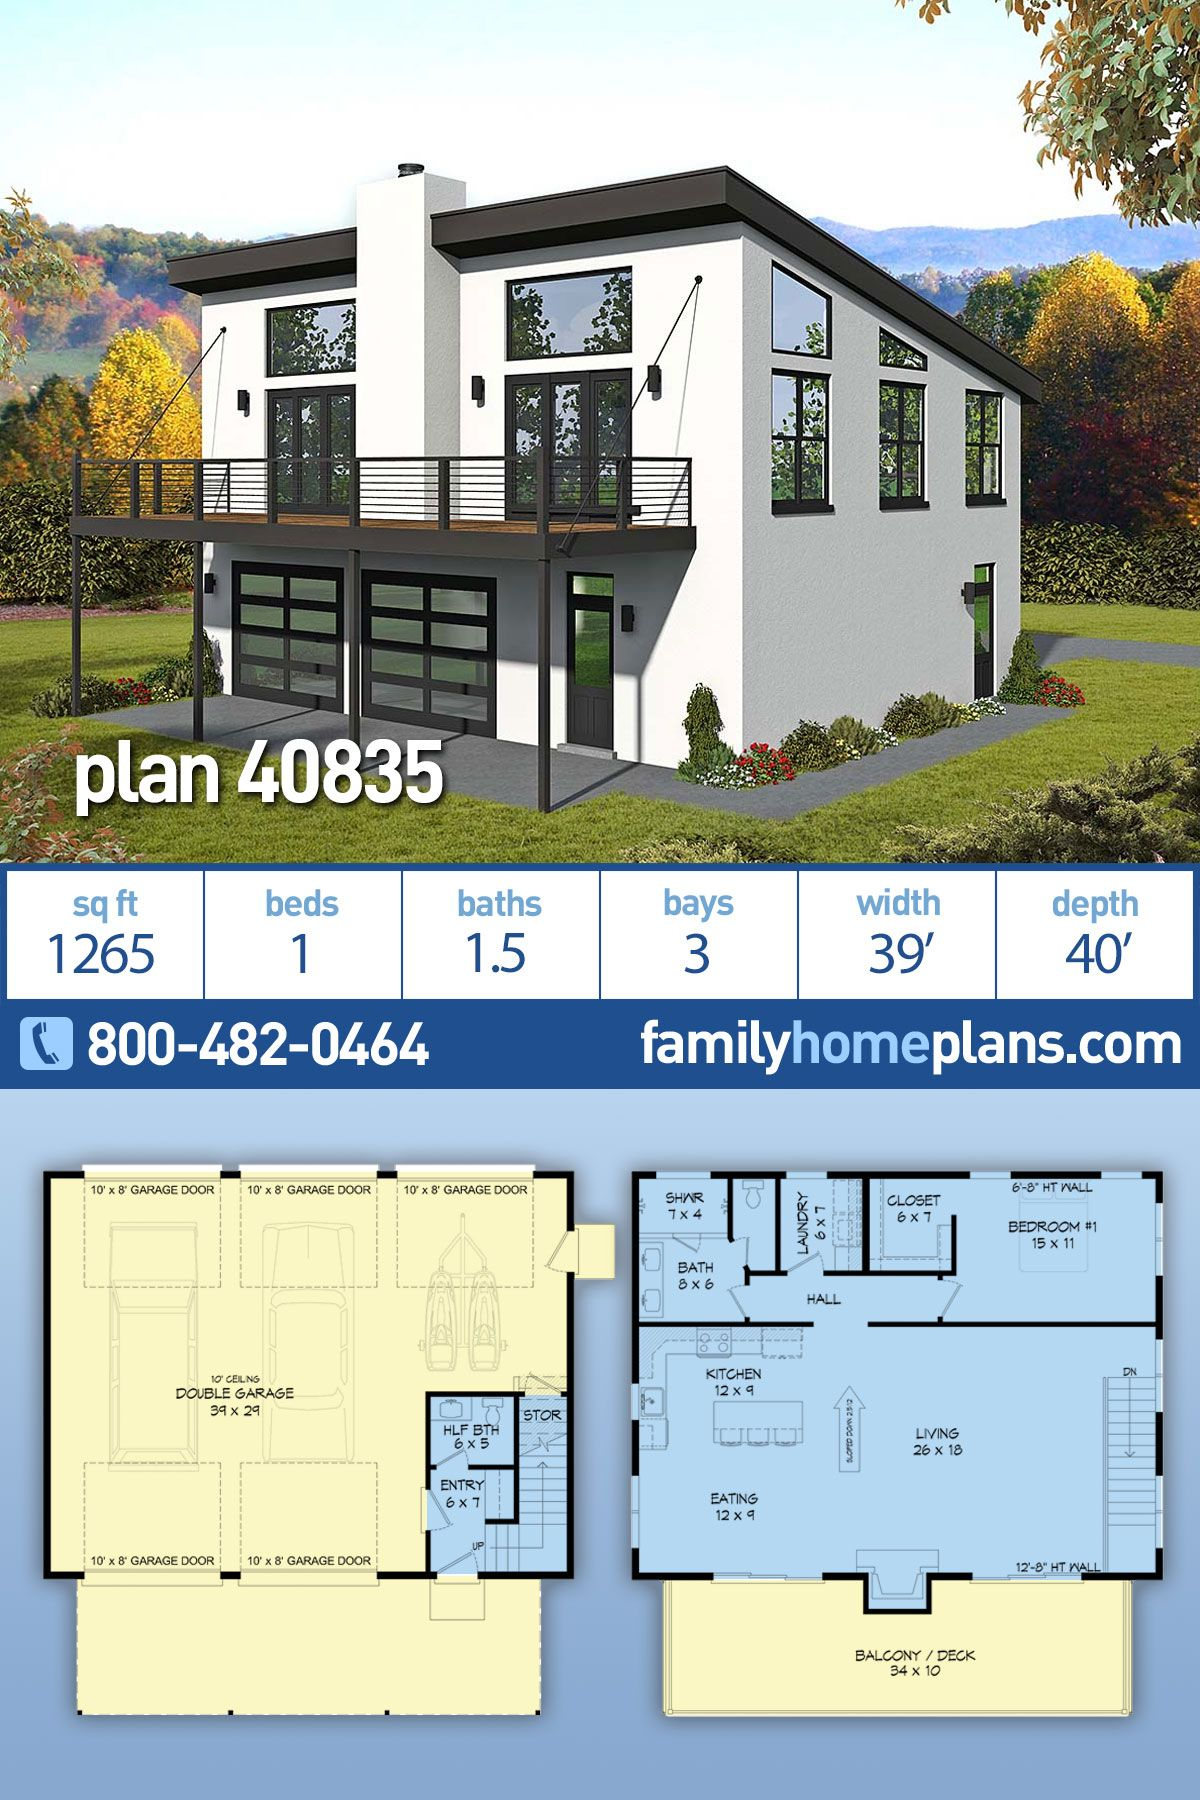 Traditional Style House Plan 40835 With 1 Bed 2 Bath 3 Car Garage In 2020 Garage Apartment Floor Plans Garage House Plans Garage Apartment Plan